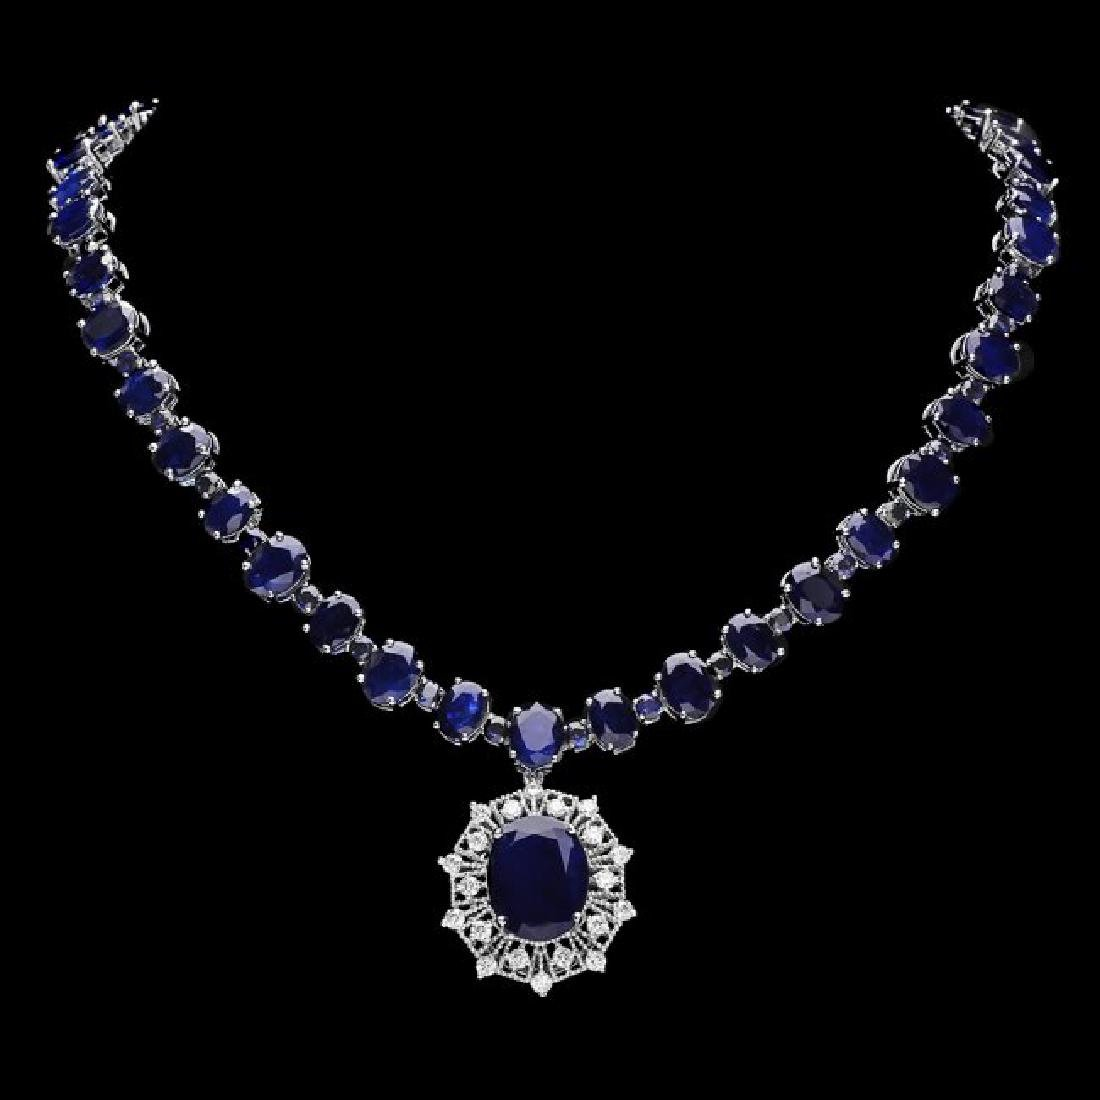 14k Gold 86ct Sapphire 1.40ct Diamond Necklace